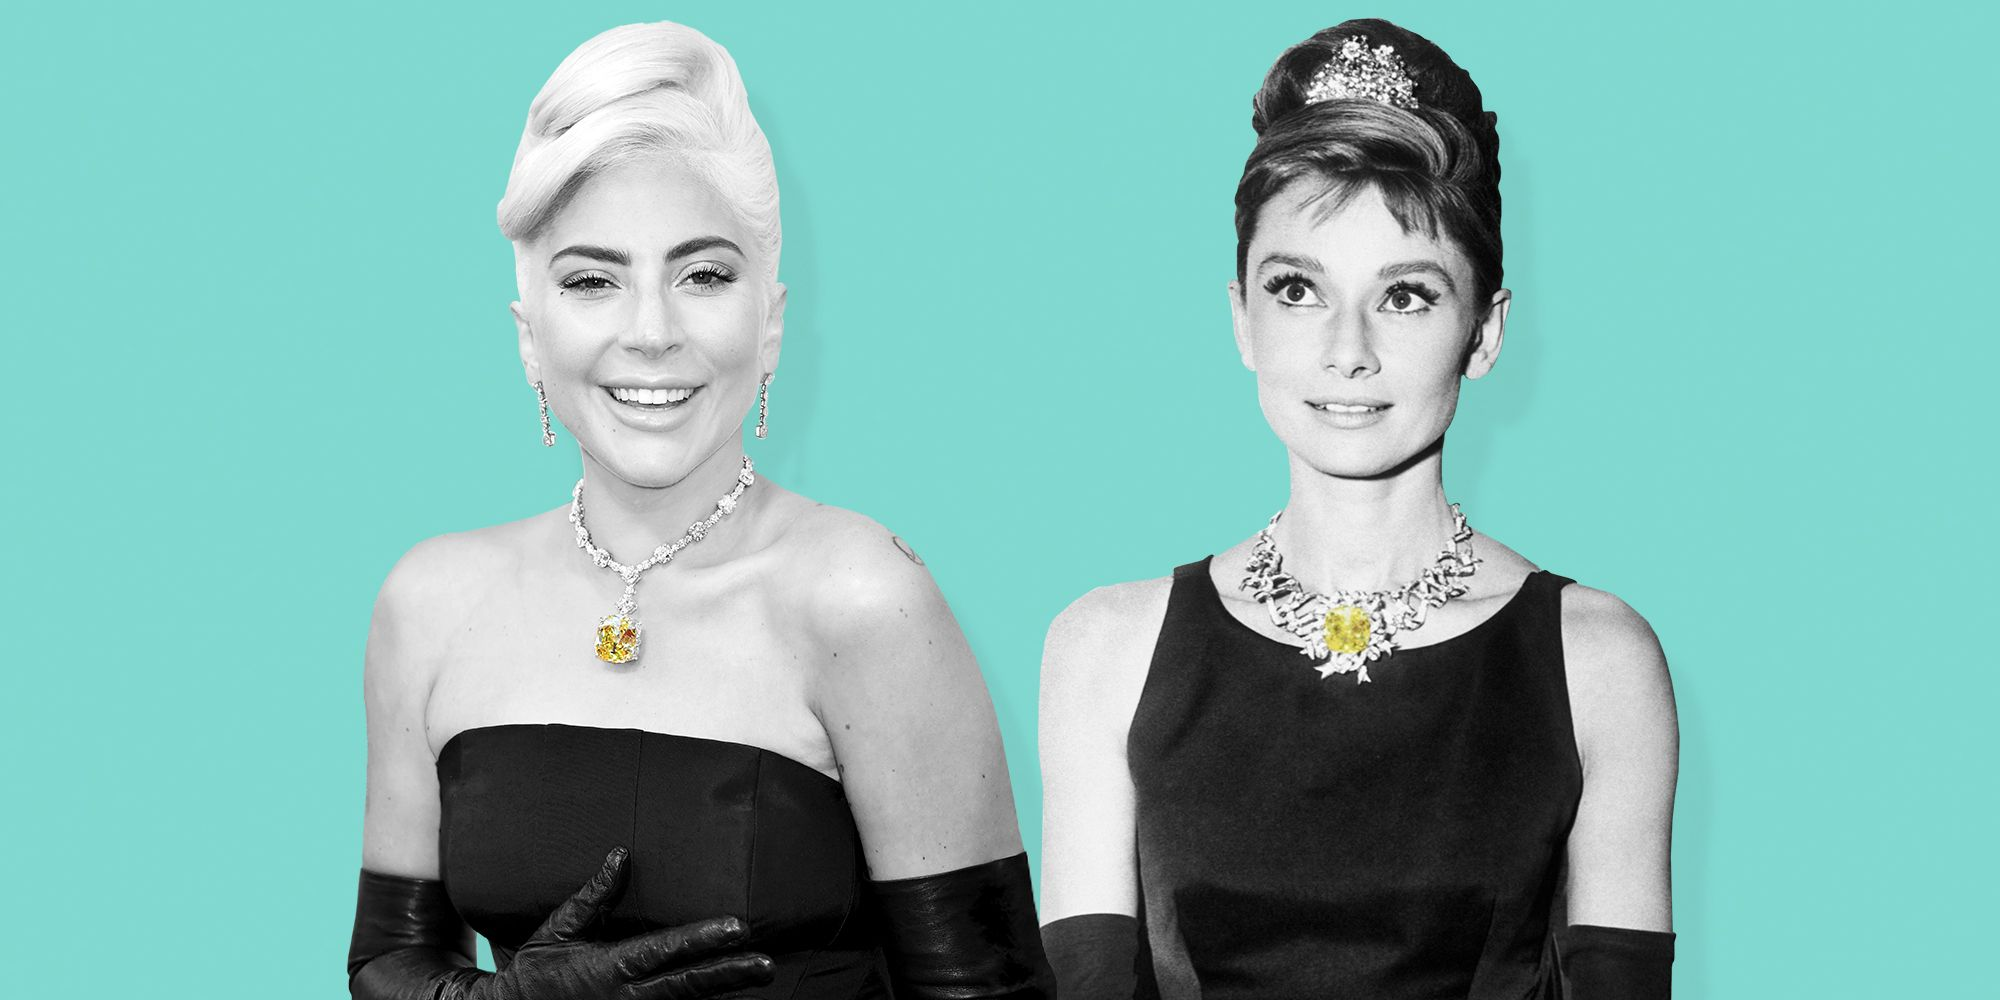 f1b0564cf The Tiffany Diamond Lady Gaga Wore to the 2019 Oscars Has a Fascinating  History